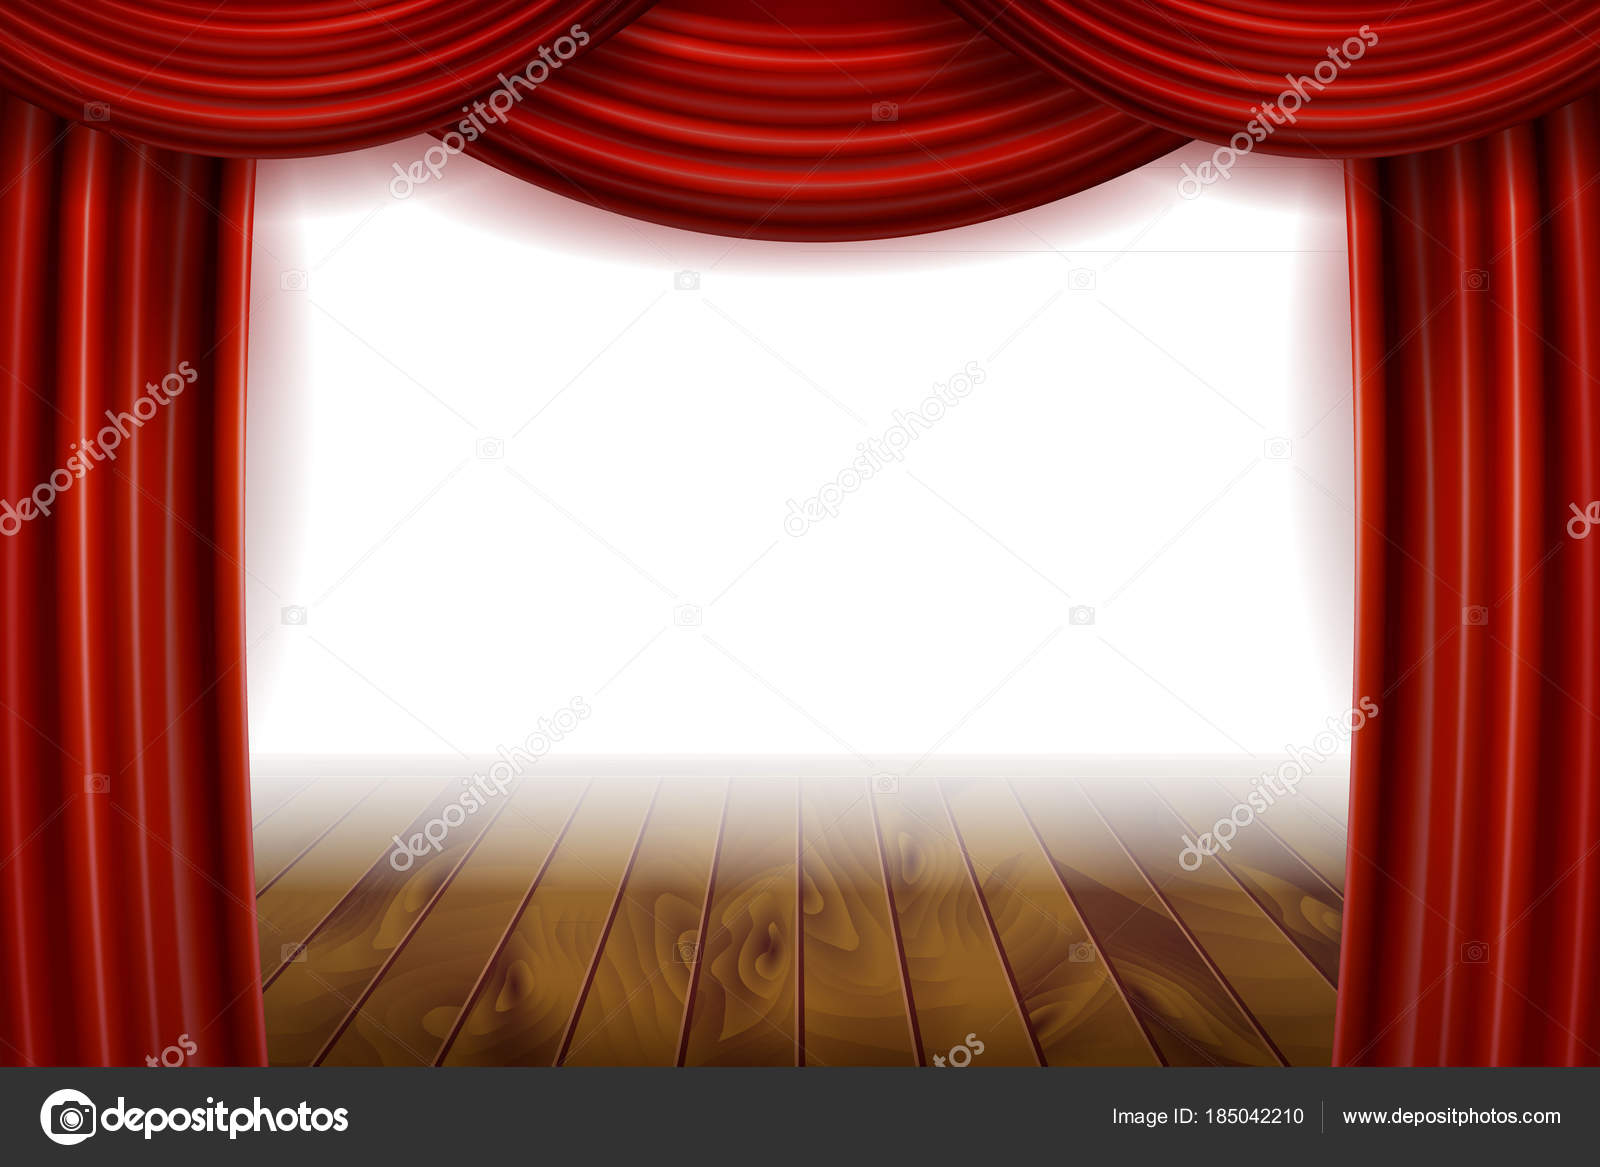 on velvet or wall burst with drapes radial curtains sun photo red curtain an as old a grunge design entertainme